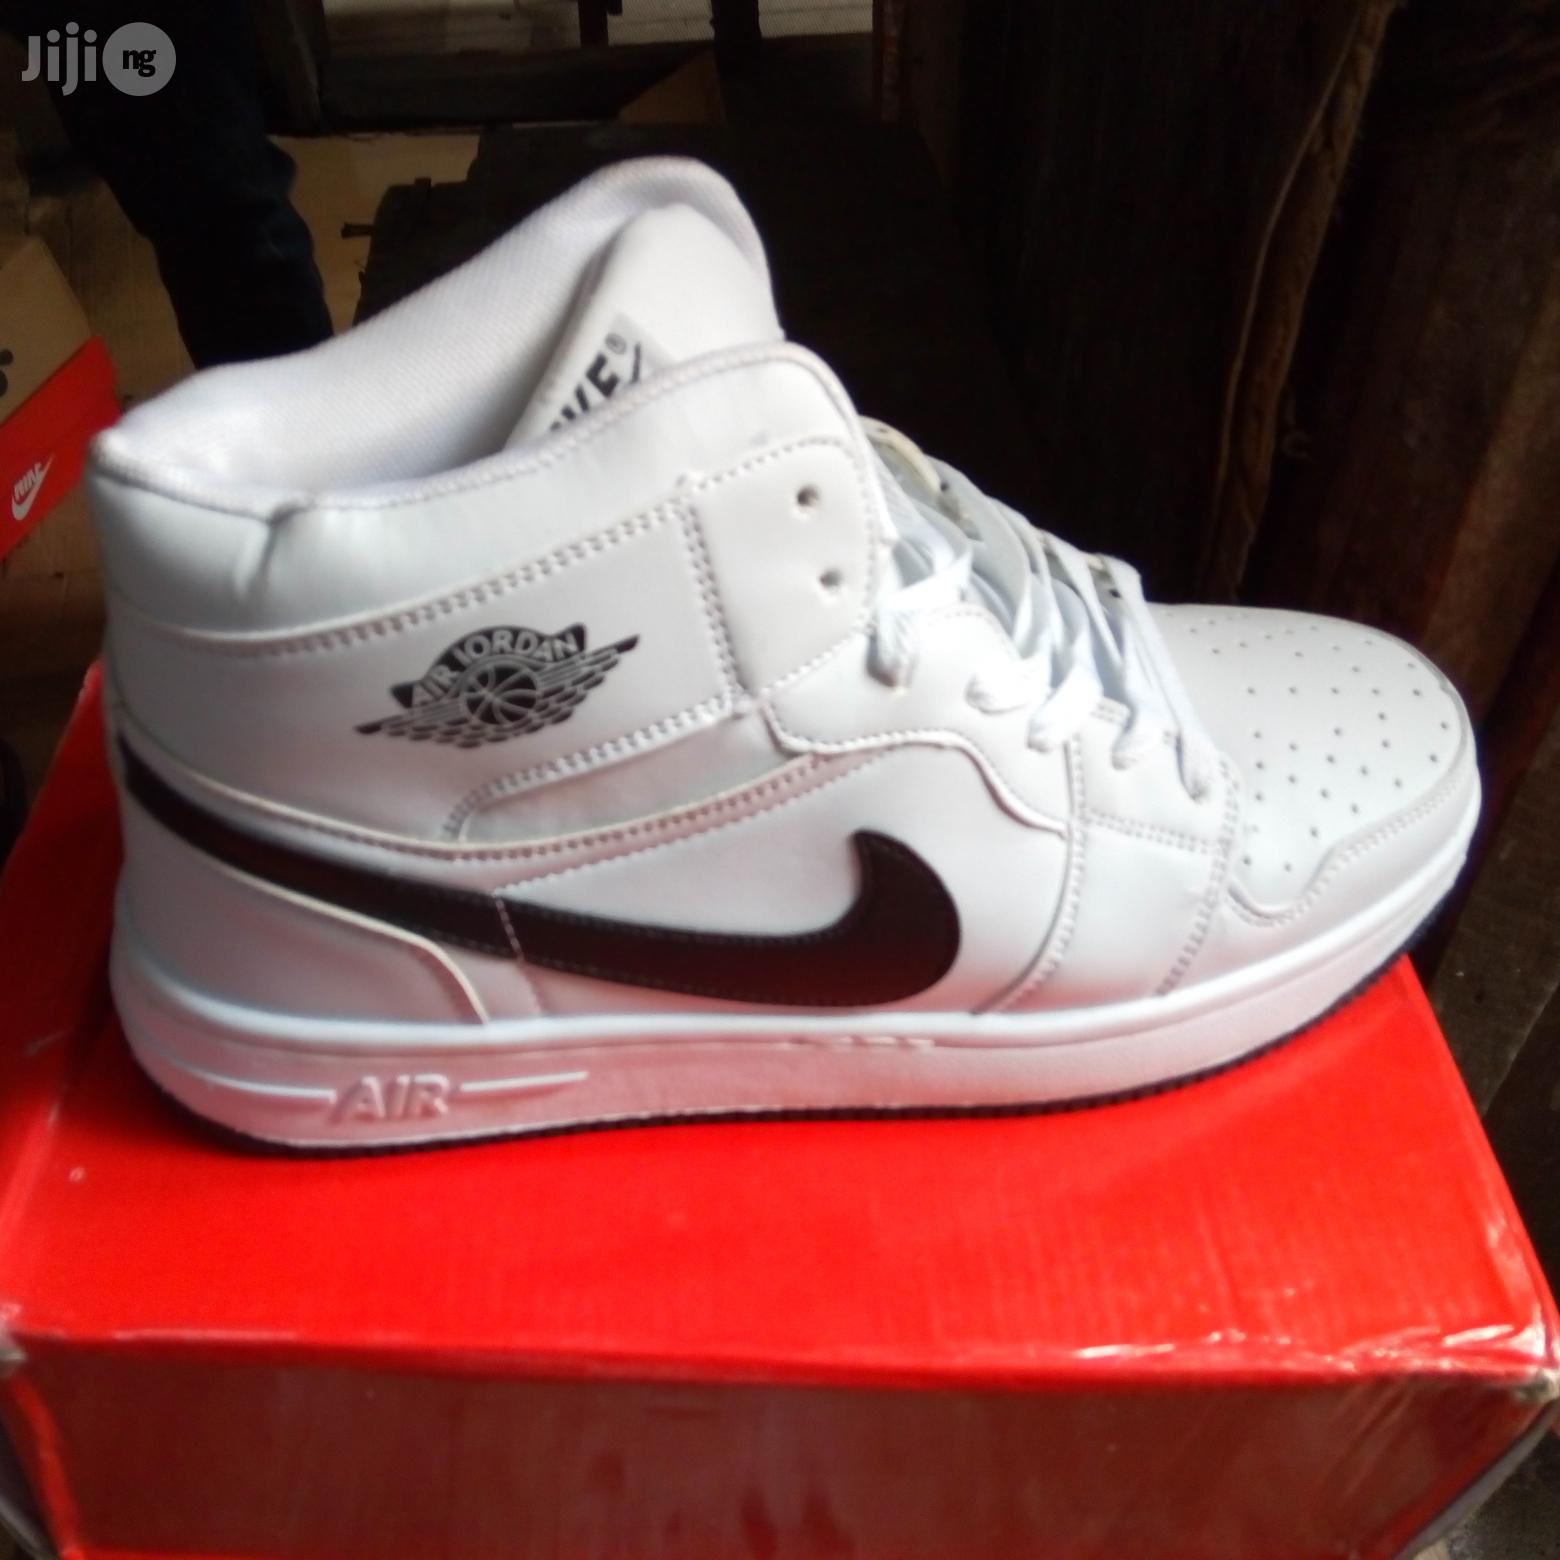 Nike High Top Sneakers in Yaba - Shoes